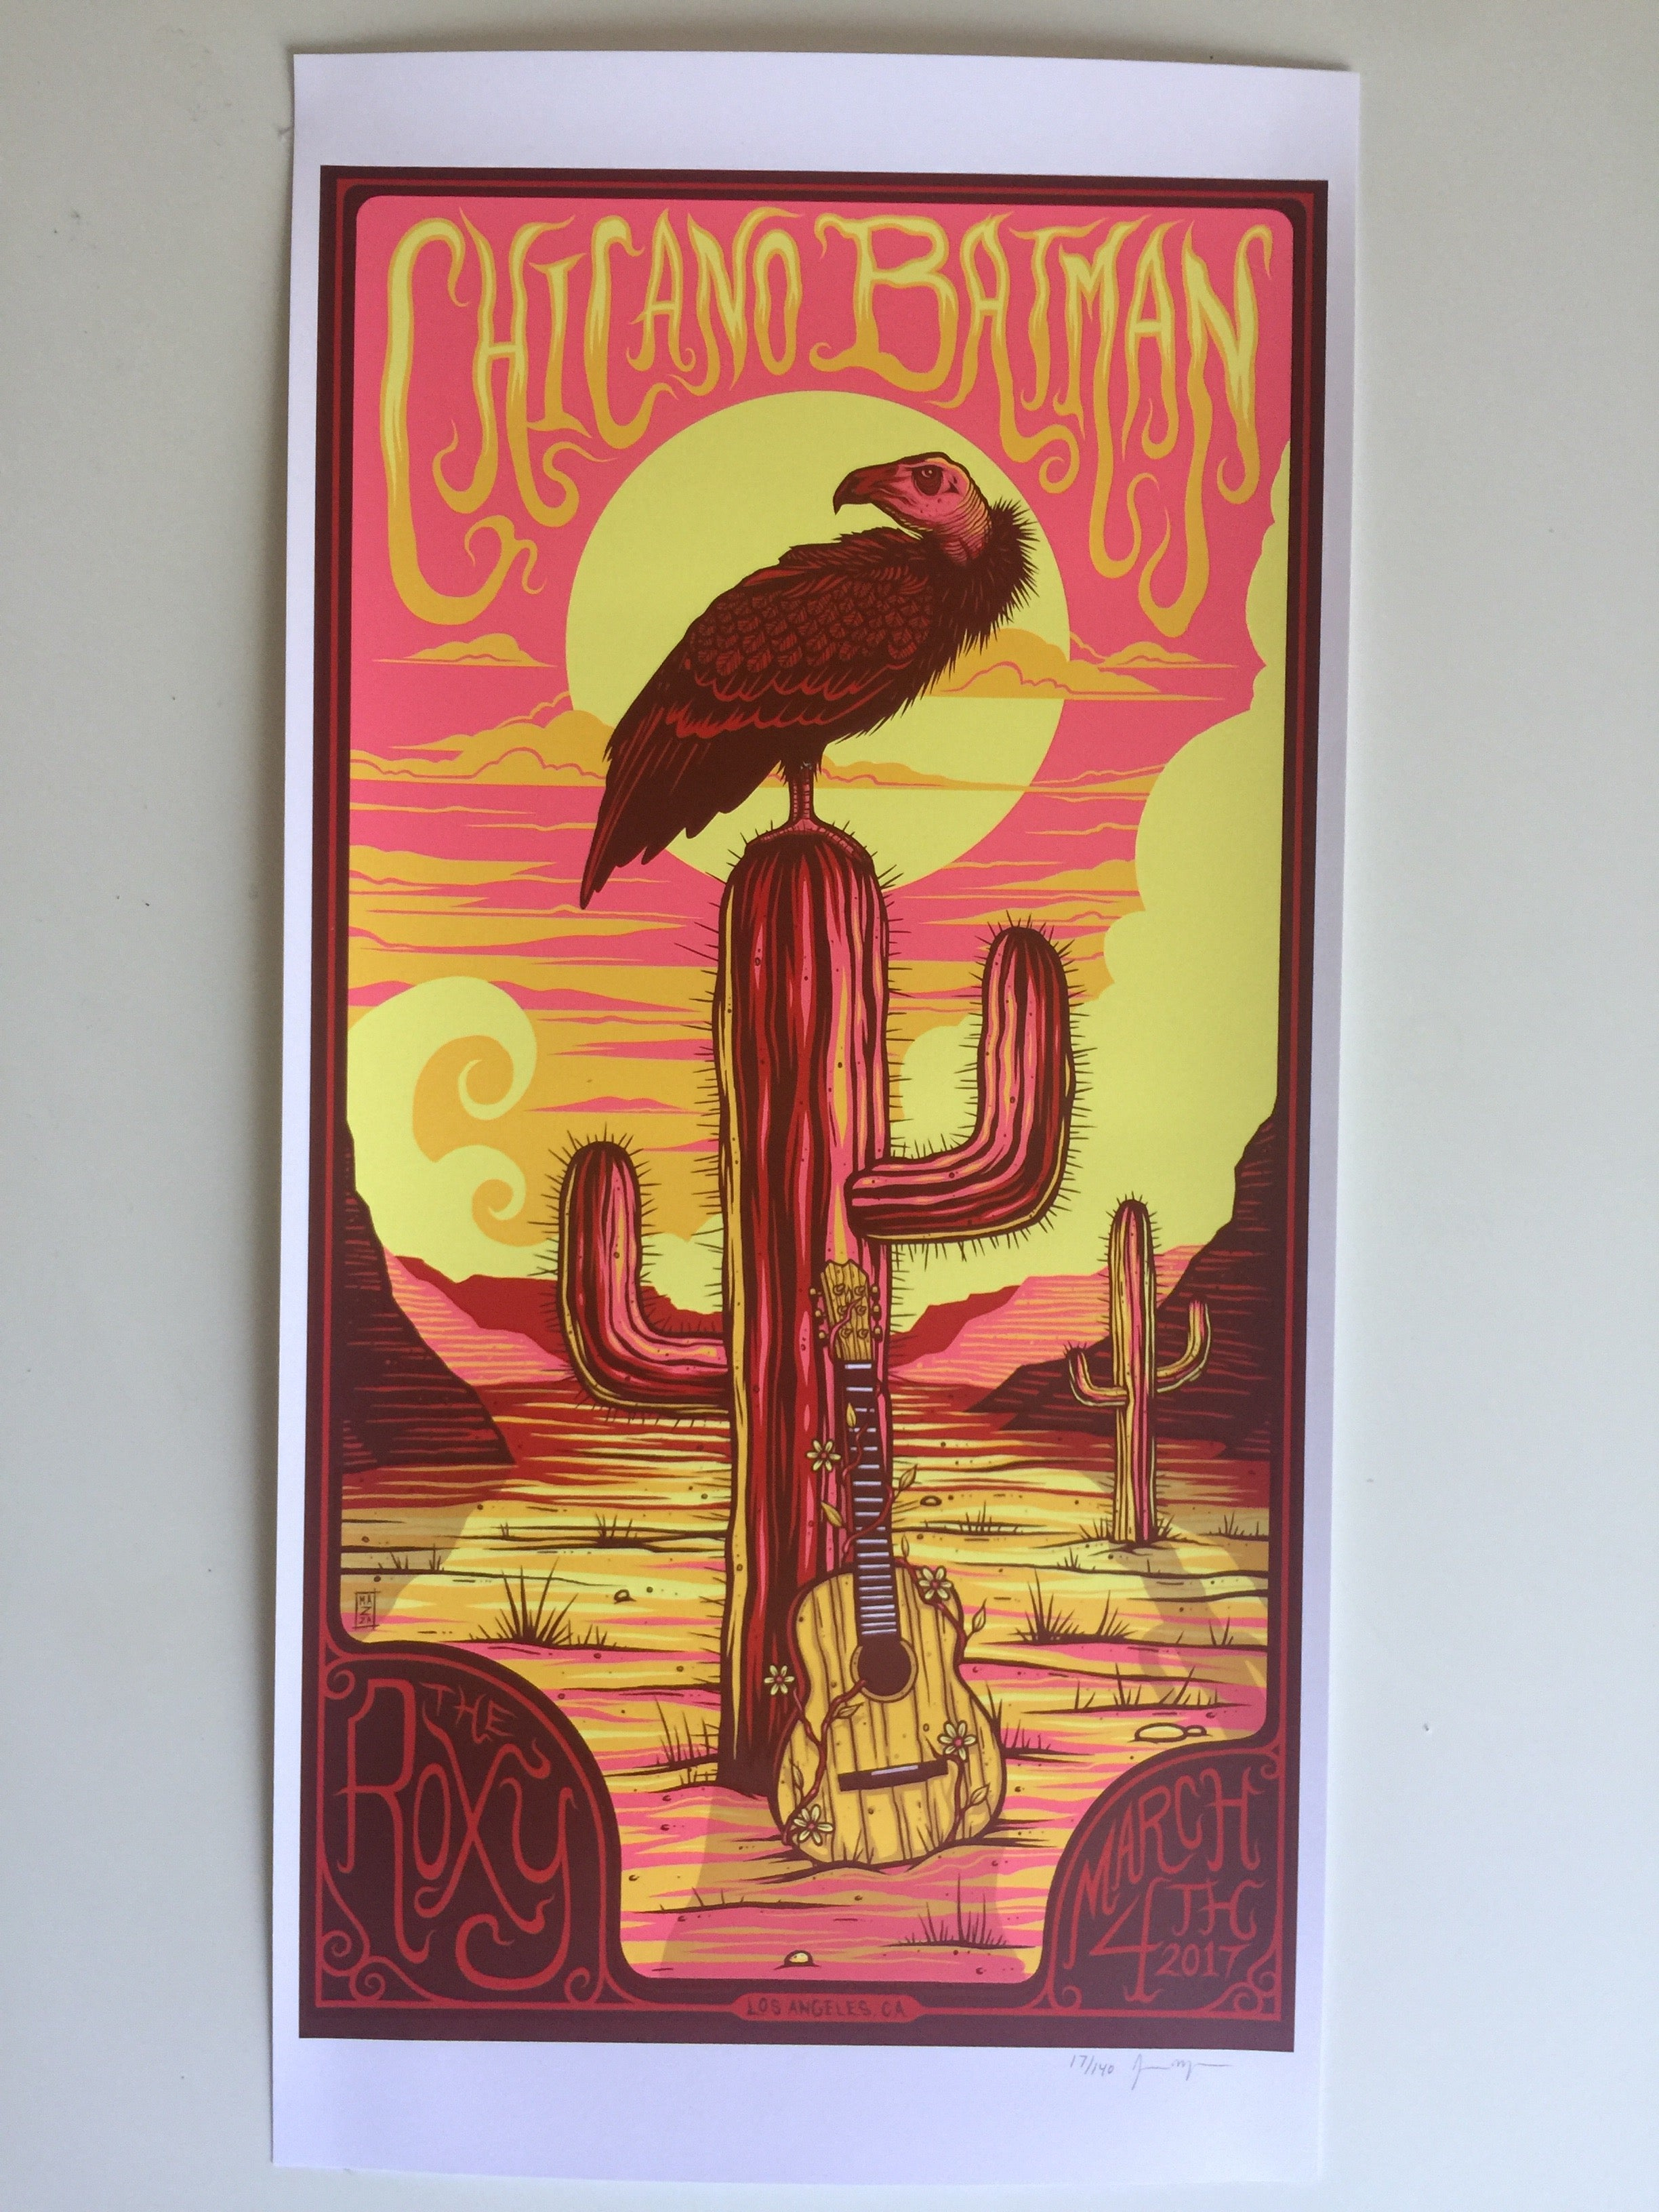 Chicano Batman Chicano Batman Vinyl 3 Chicano Batman 29